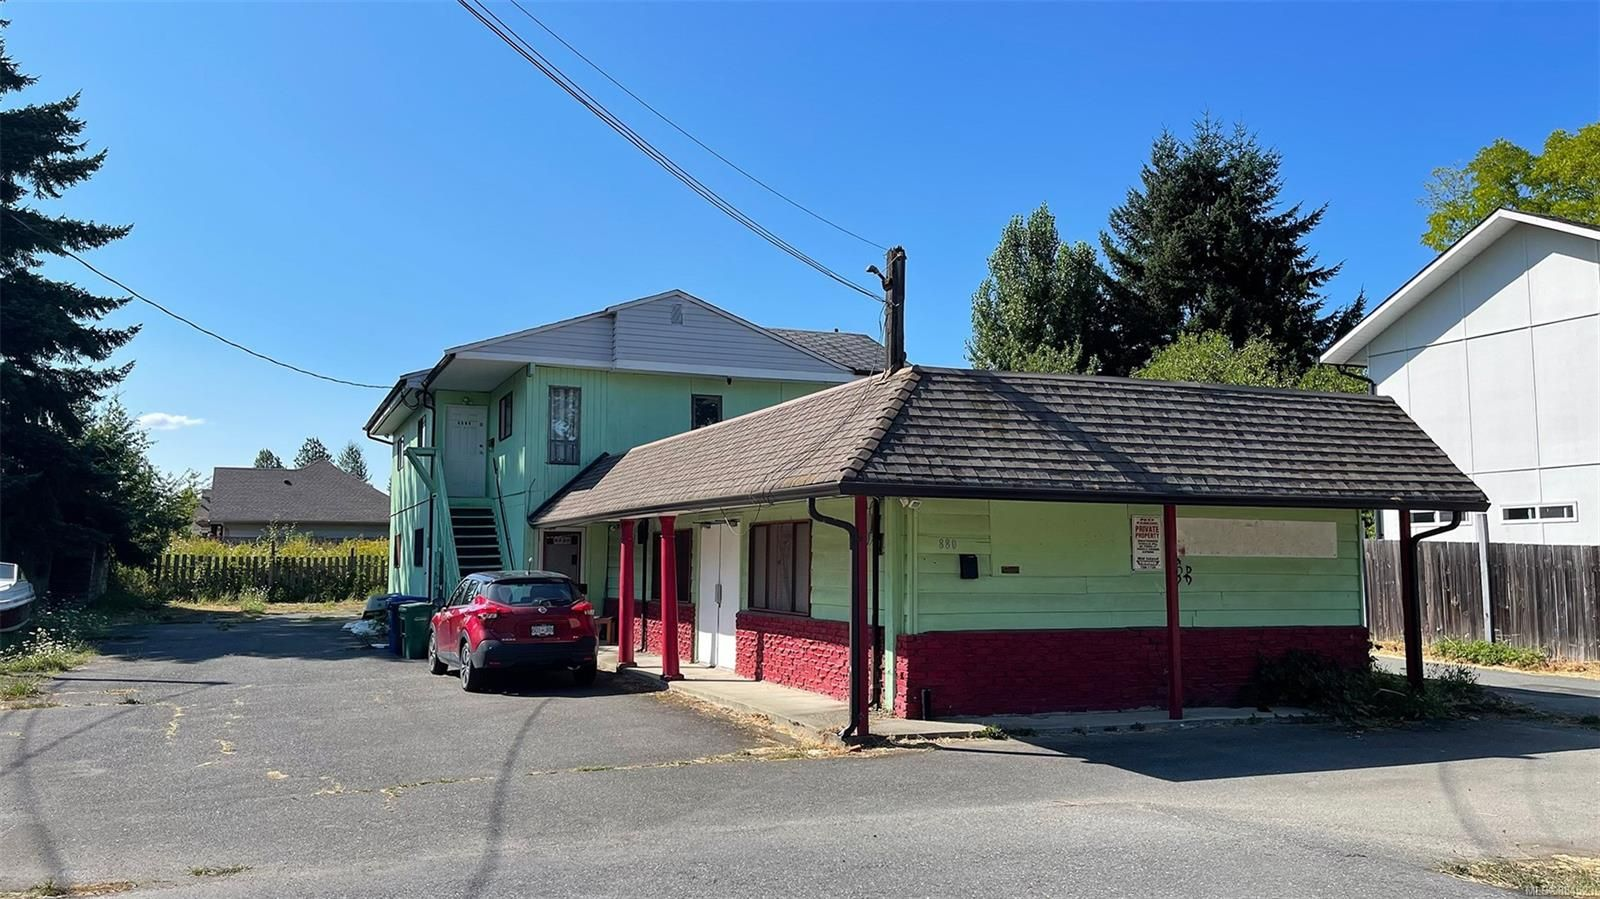 Main Photo: 880 Hecate St in : Na Old City House for sale (Nanaimo)  : MLS®# 884523